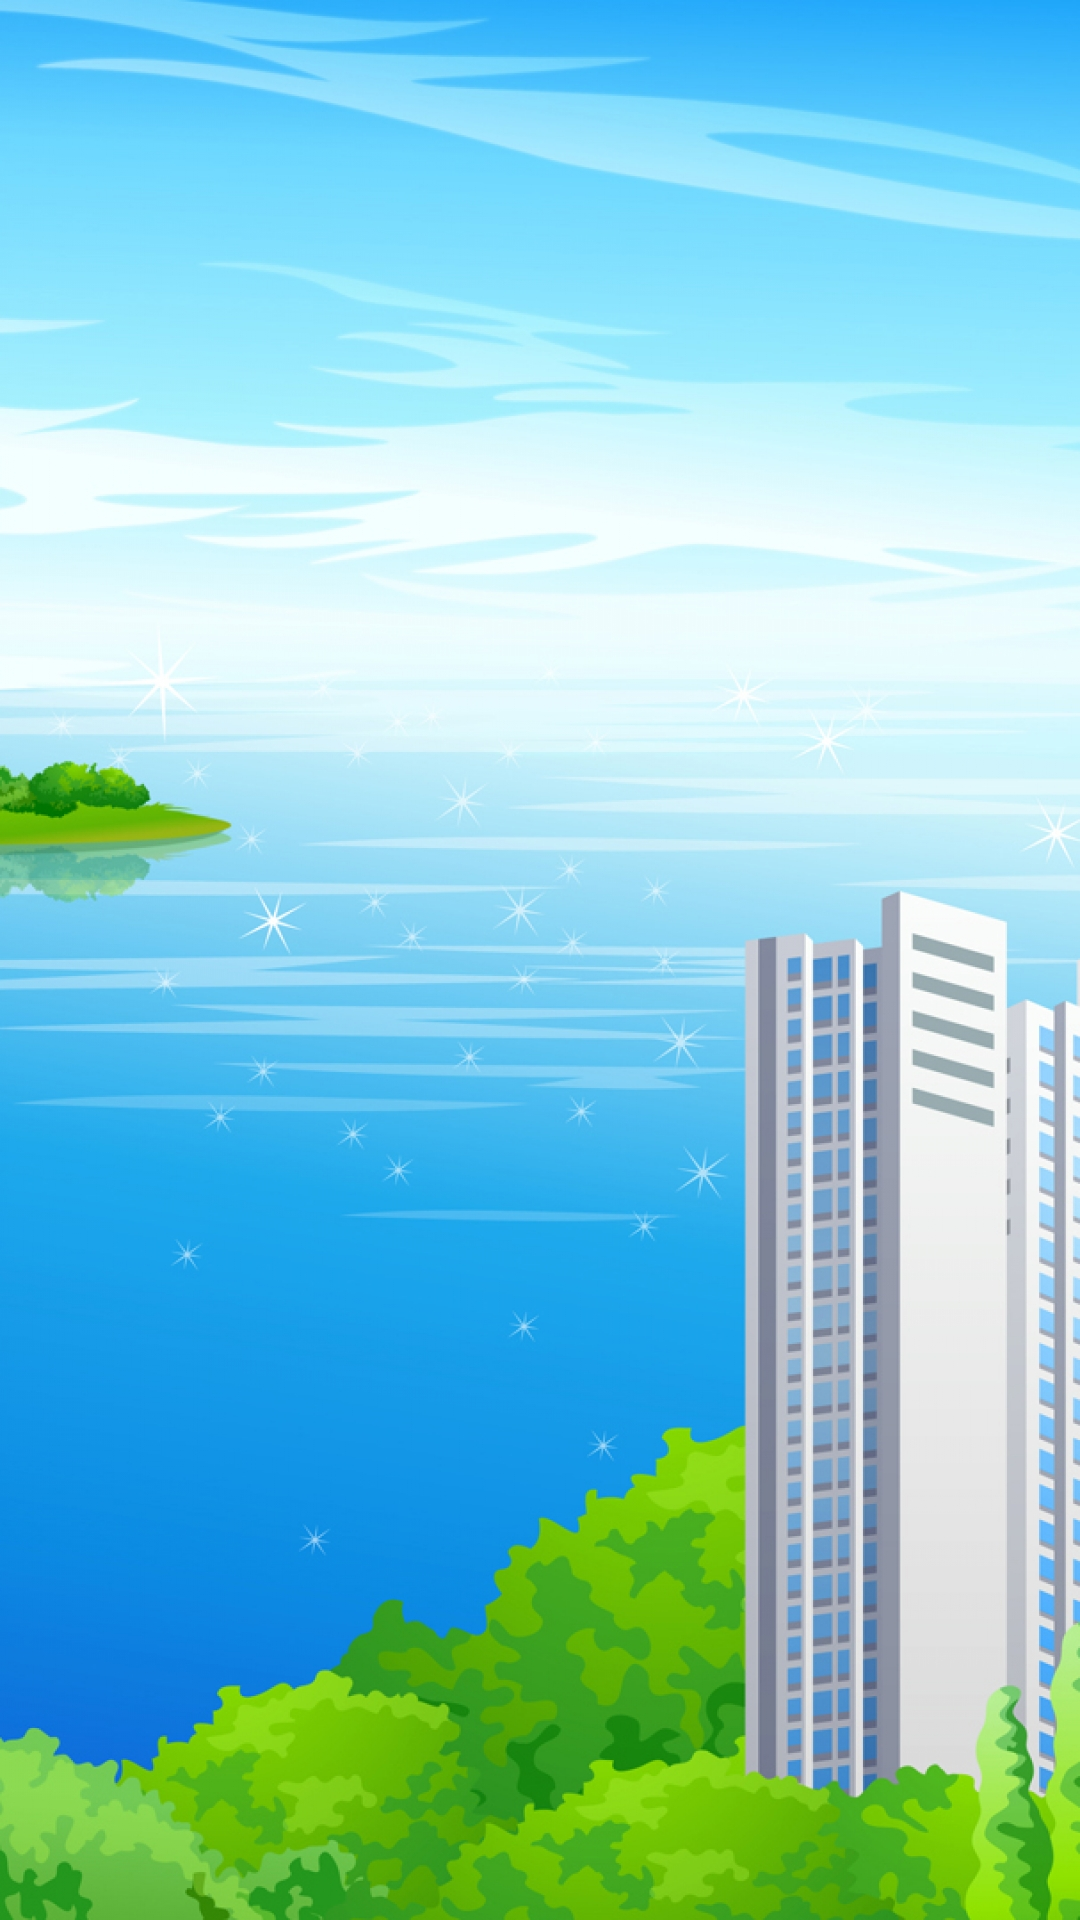 Samsung Galaxy Note 3 Wallpapers: Vector City Android